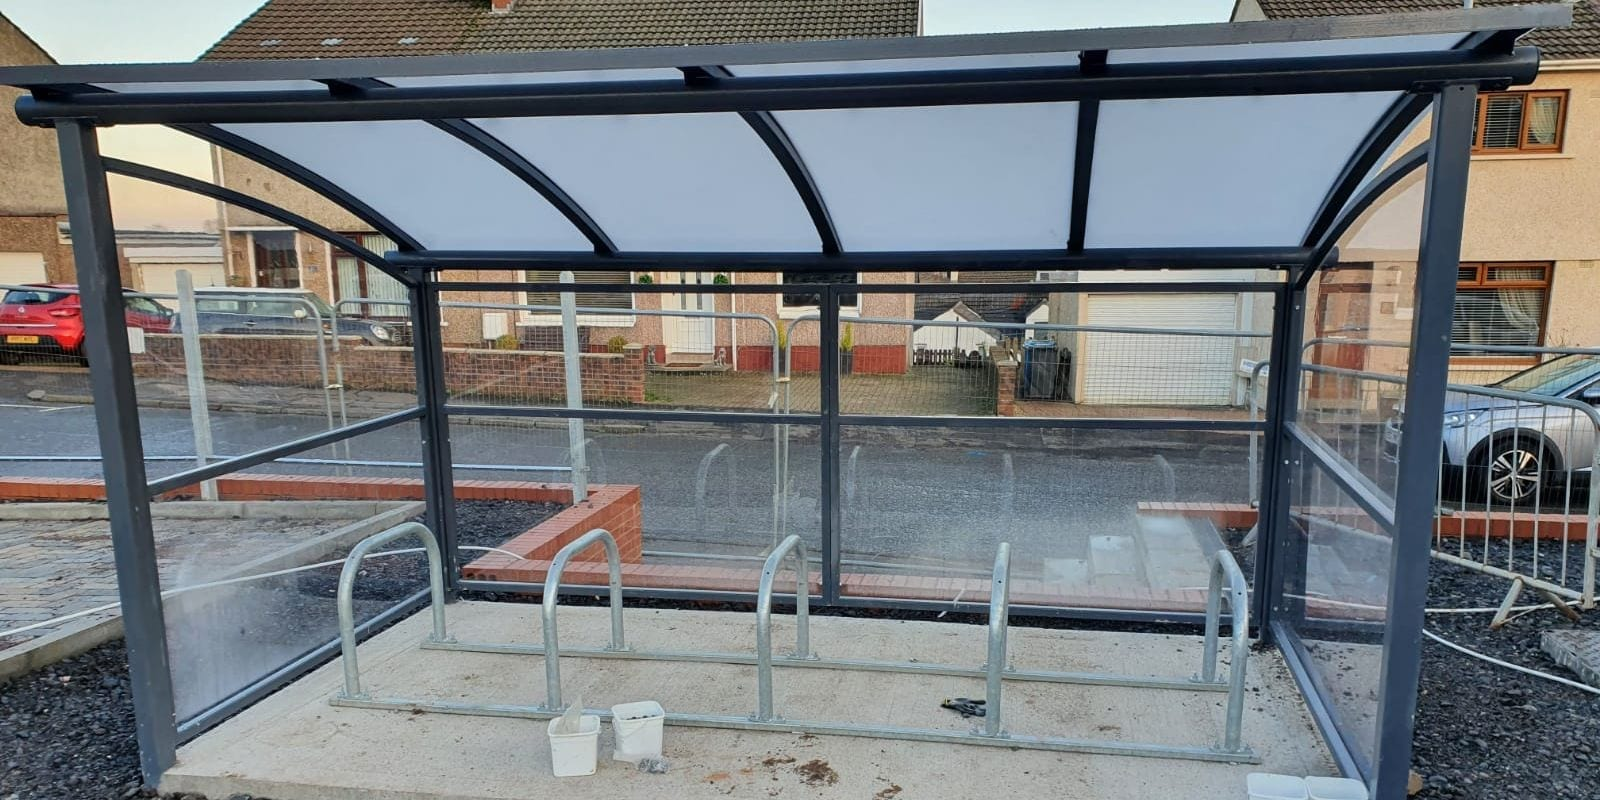 Cycle shelter we designed for Cross Arthurlie Primary School